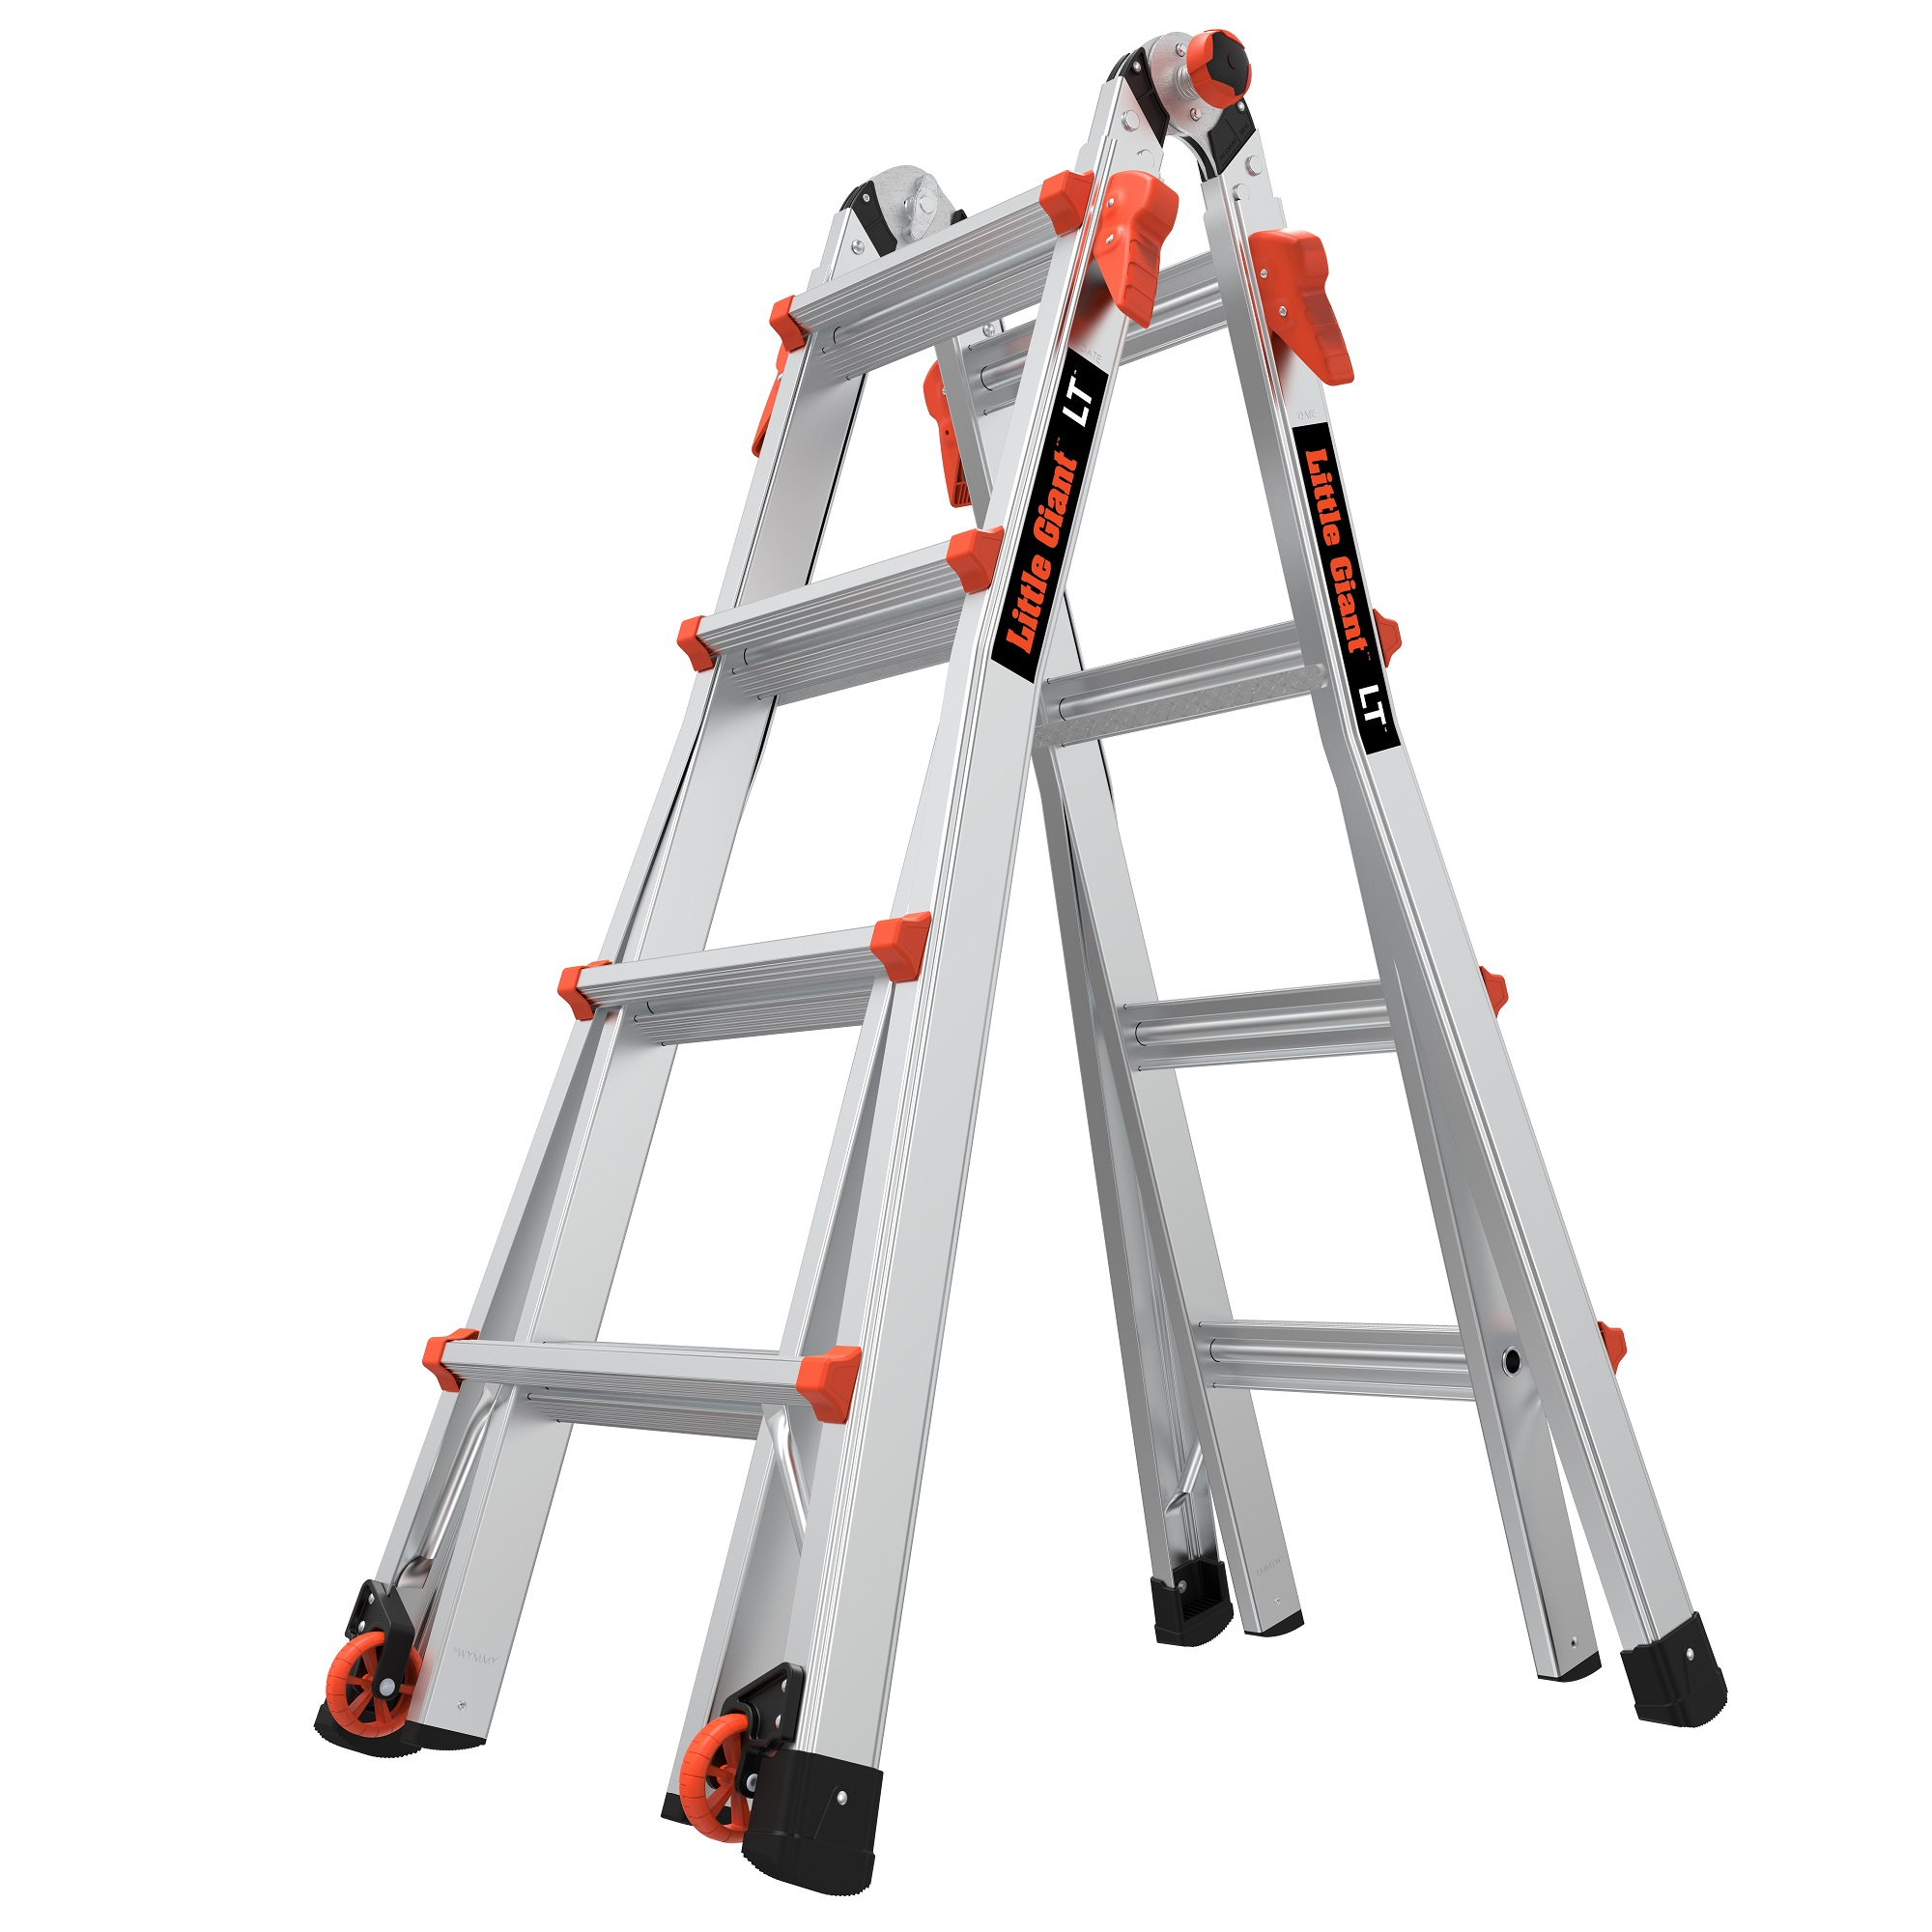 Outdoor Working BEETRO 10.5 ft Aluminum Telescoping Ladder Multipurpose Ladder for Roofing Business Household Use and More Extension Folding Ladder Red 330lb Capacity